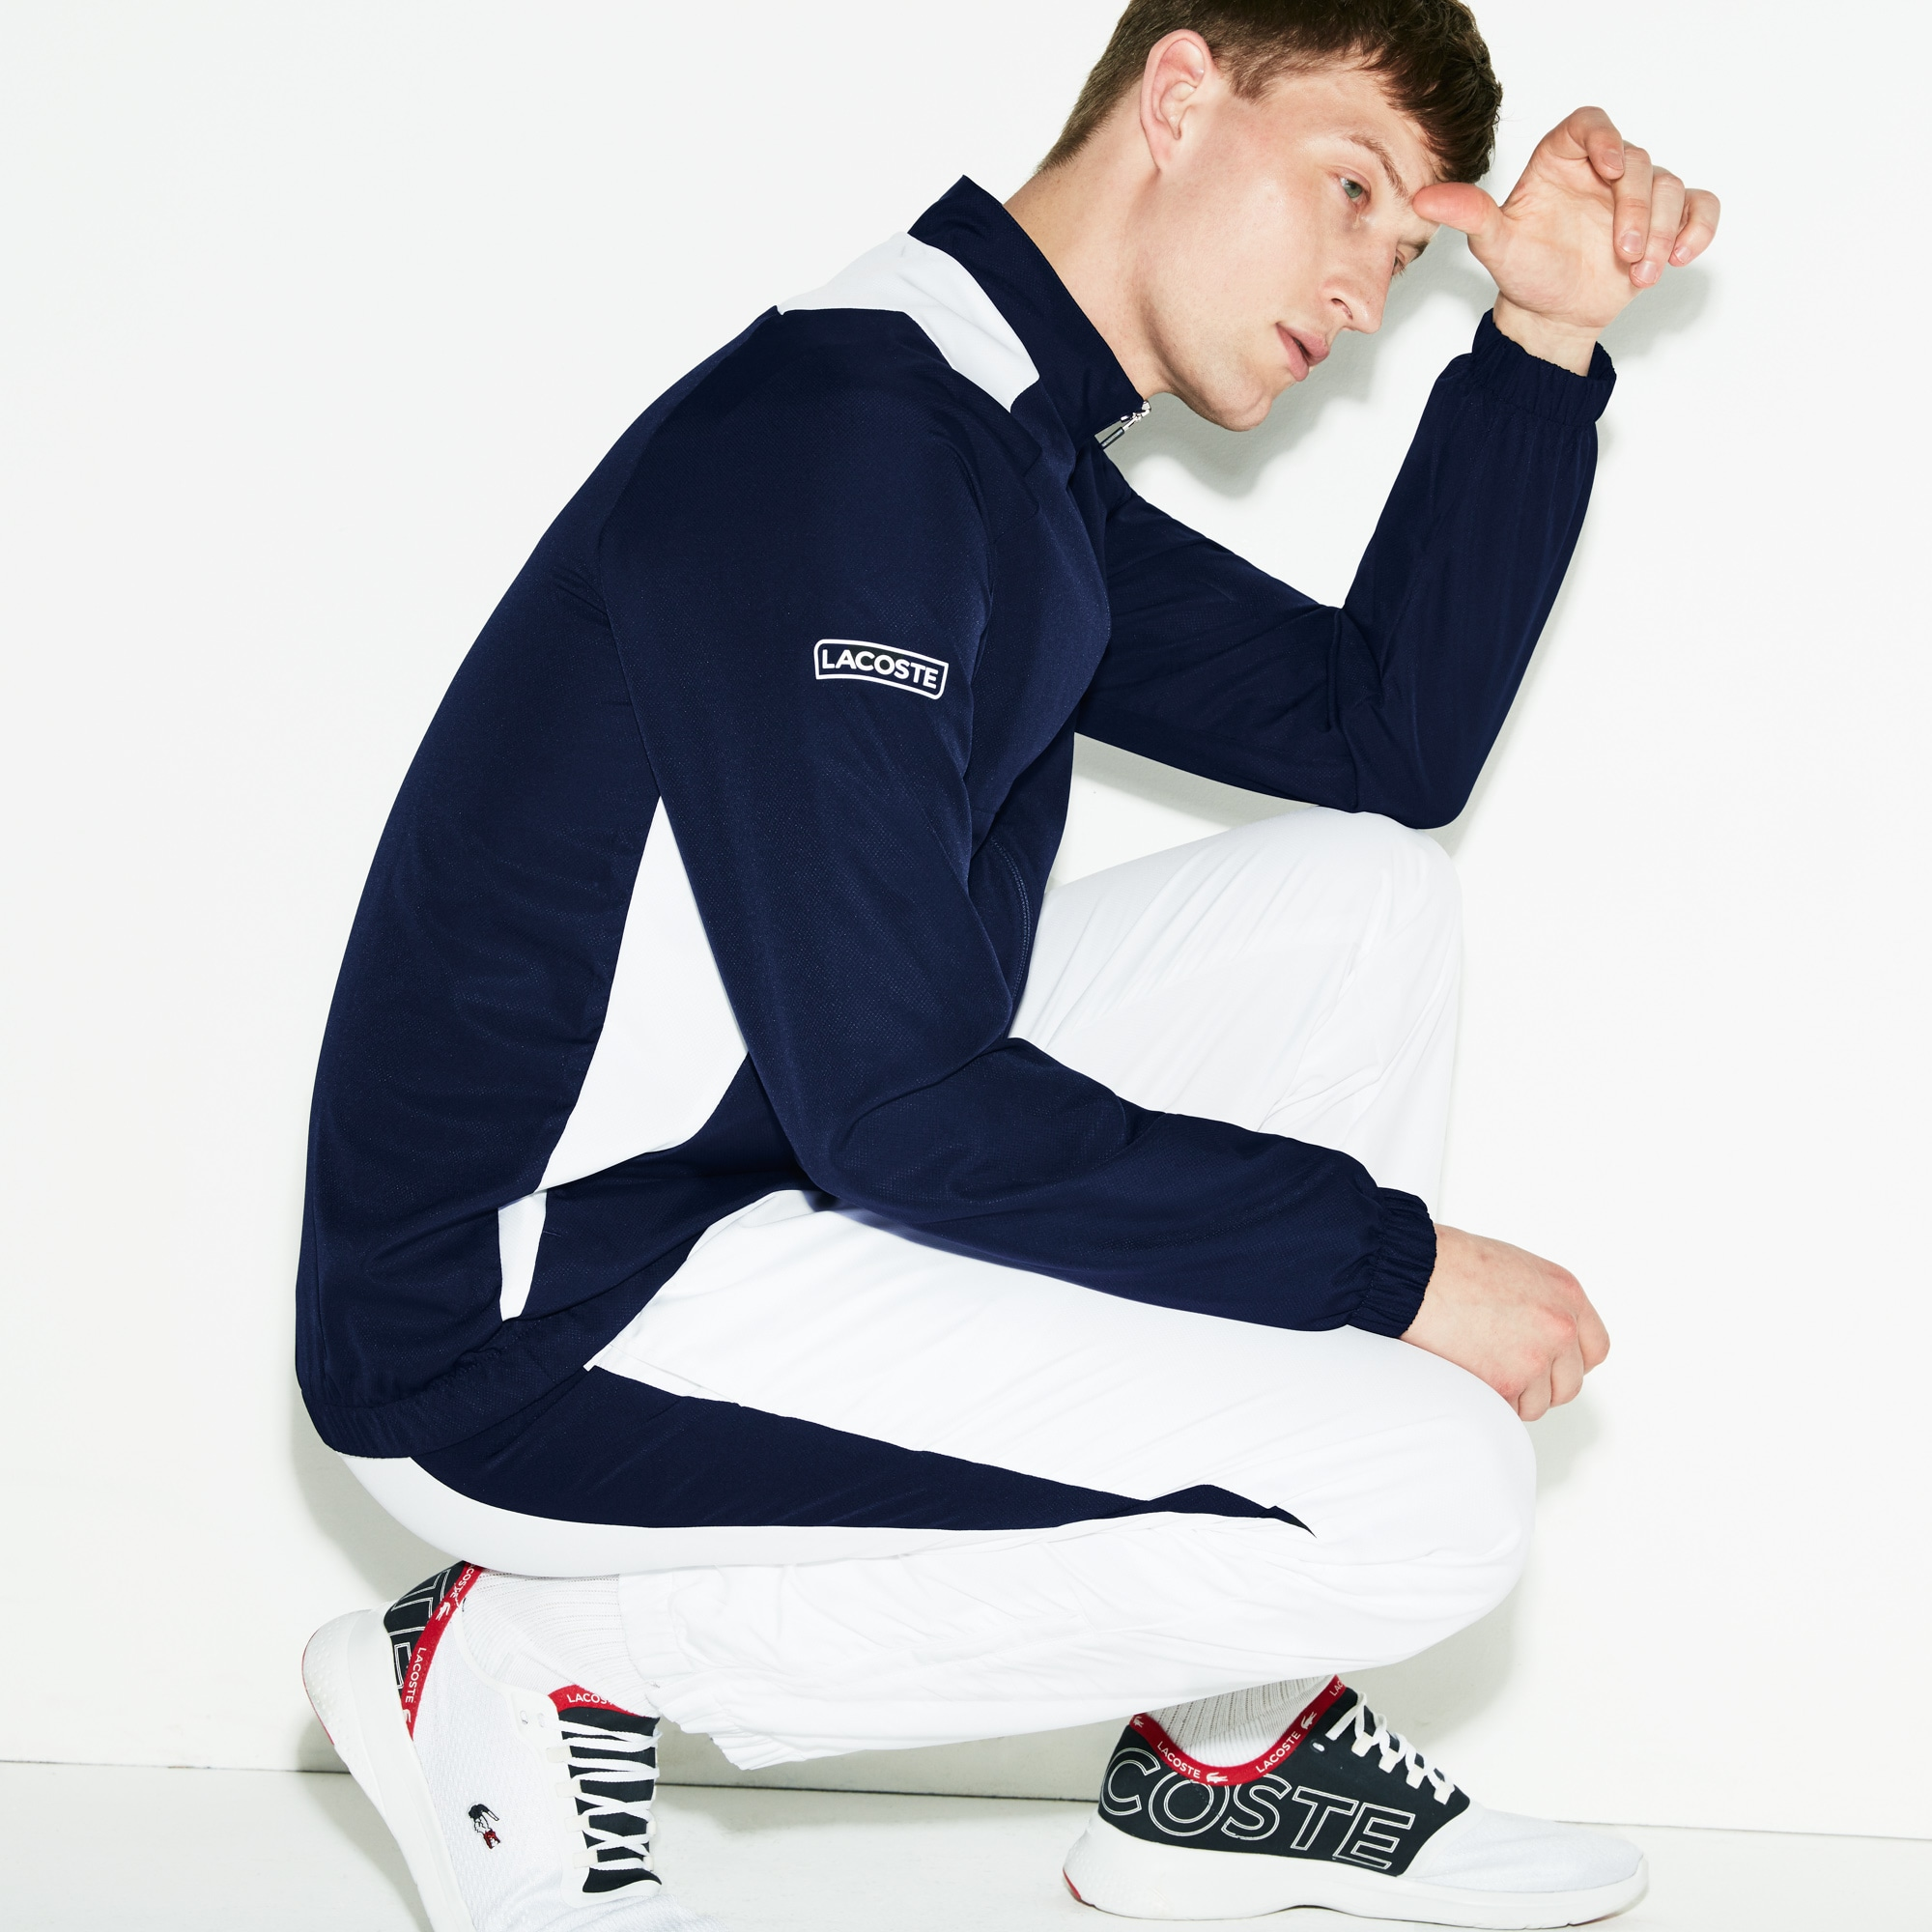 Men's Lacoste SPORT Colourblock Panel Tennis Sweatsuit